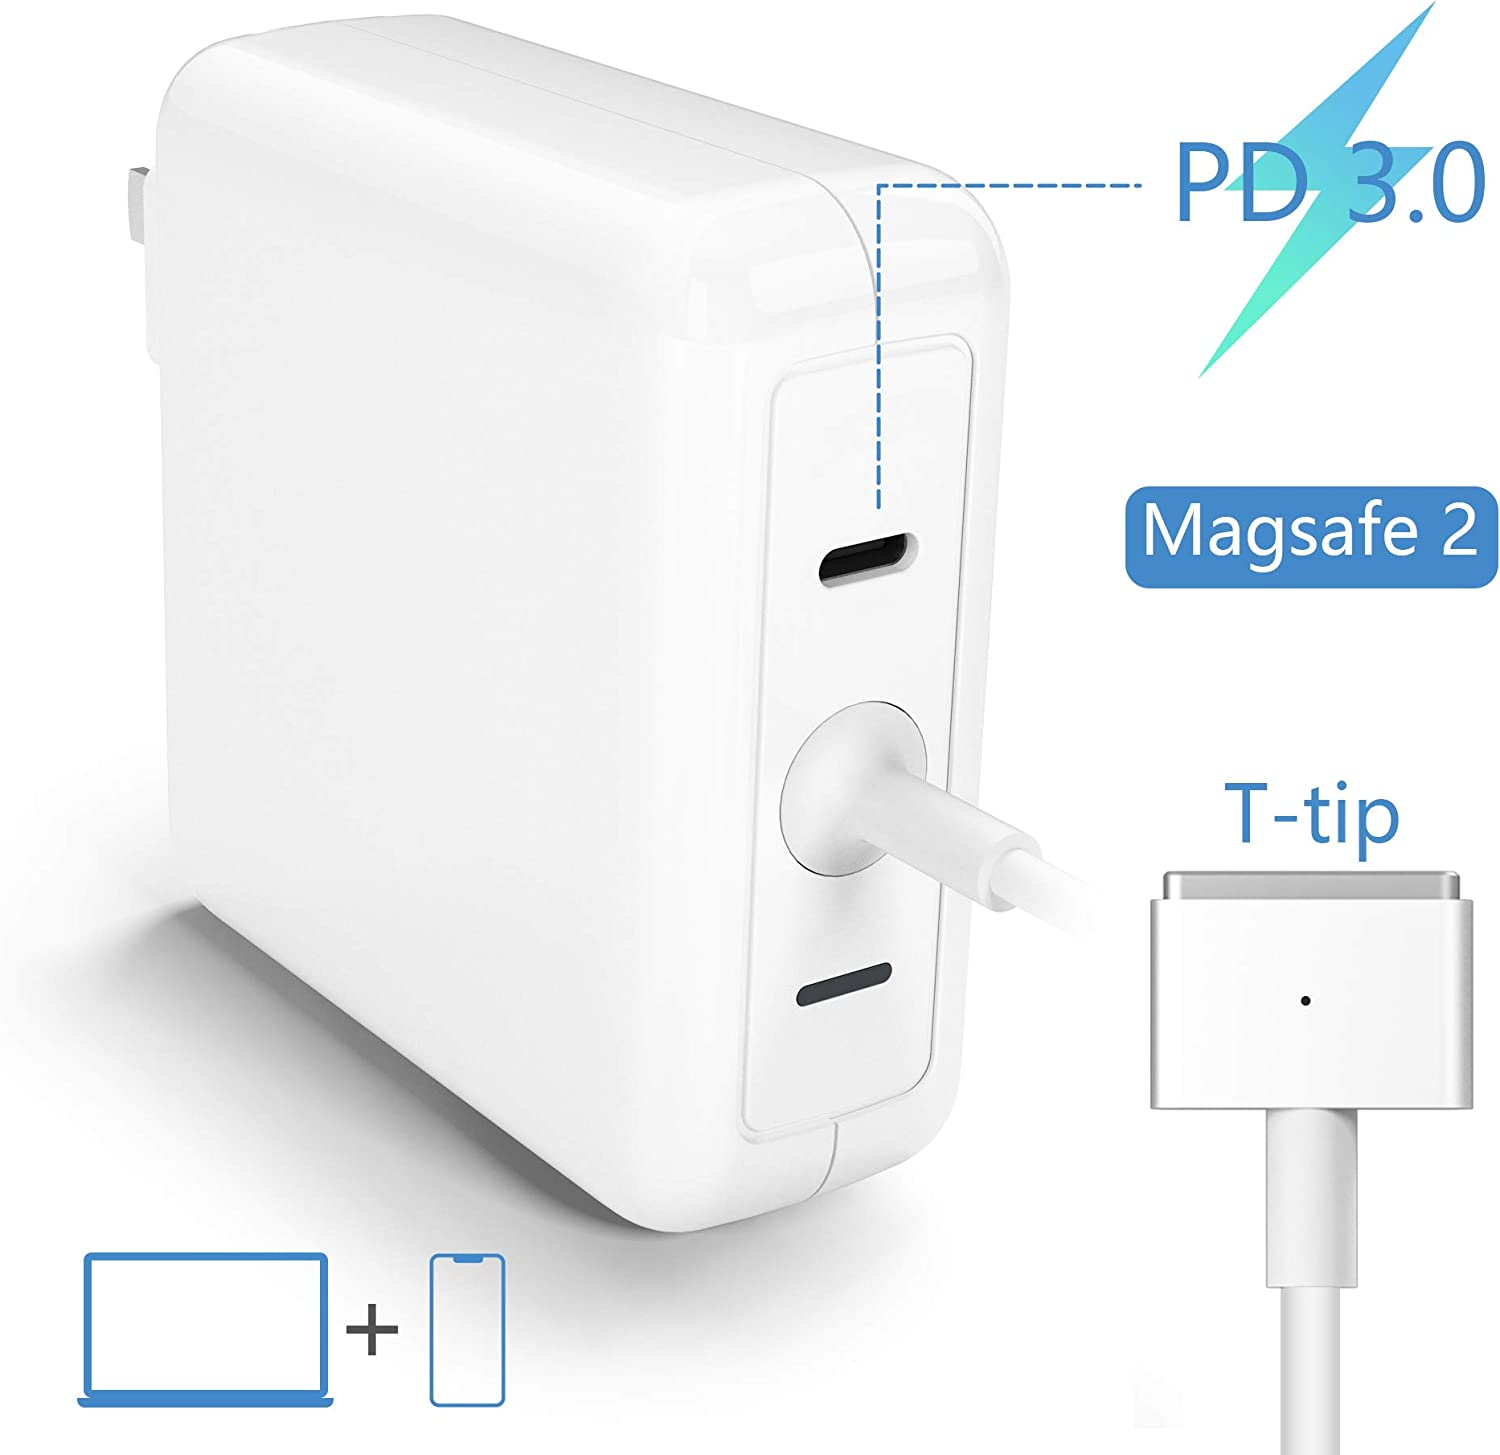 MacBook Air Charger, 45W T-Tip Magsafe 2 Laptop Adapter Compatible with MacBook Air 11-Inch and 13-Inch | USB C 18W PD Charger |Charge Phone,Mac from One Plug Point |Mac Charger Power Adapter